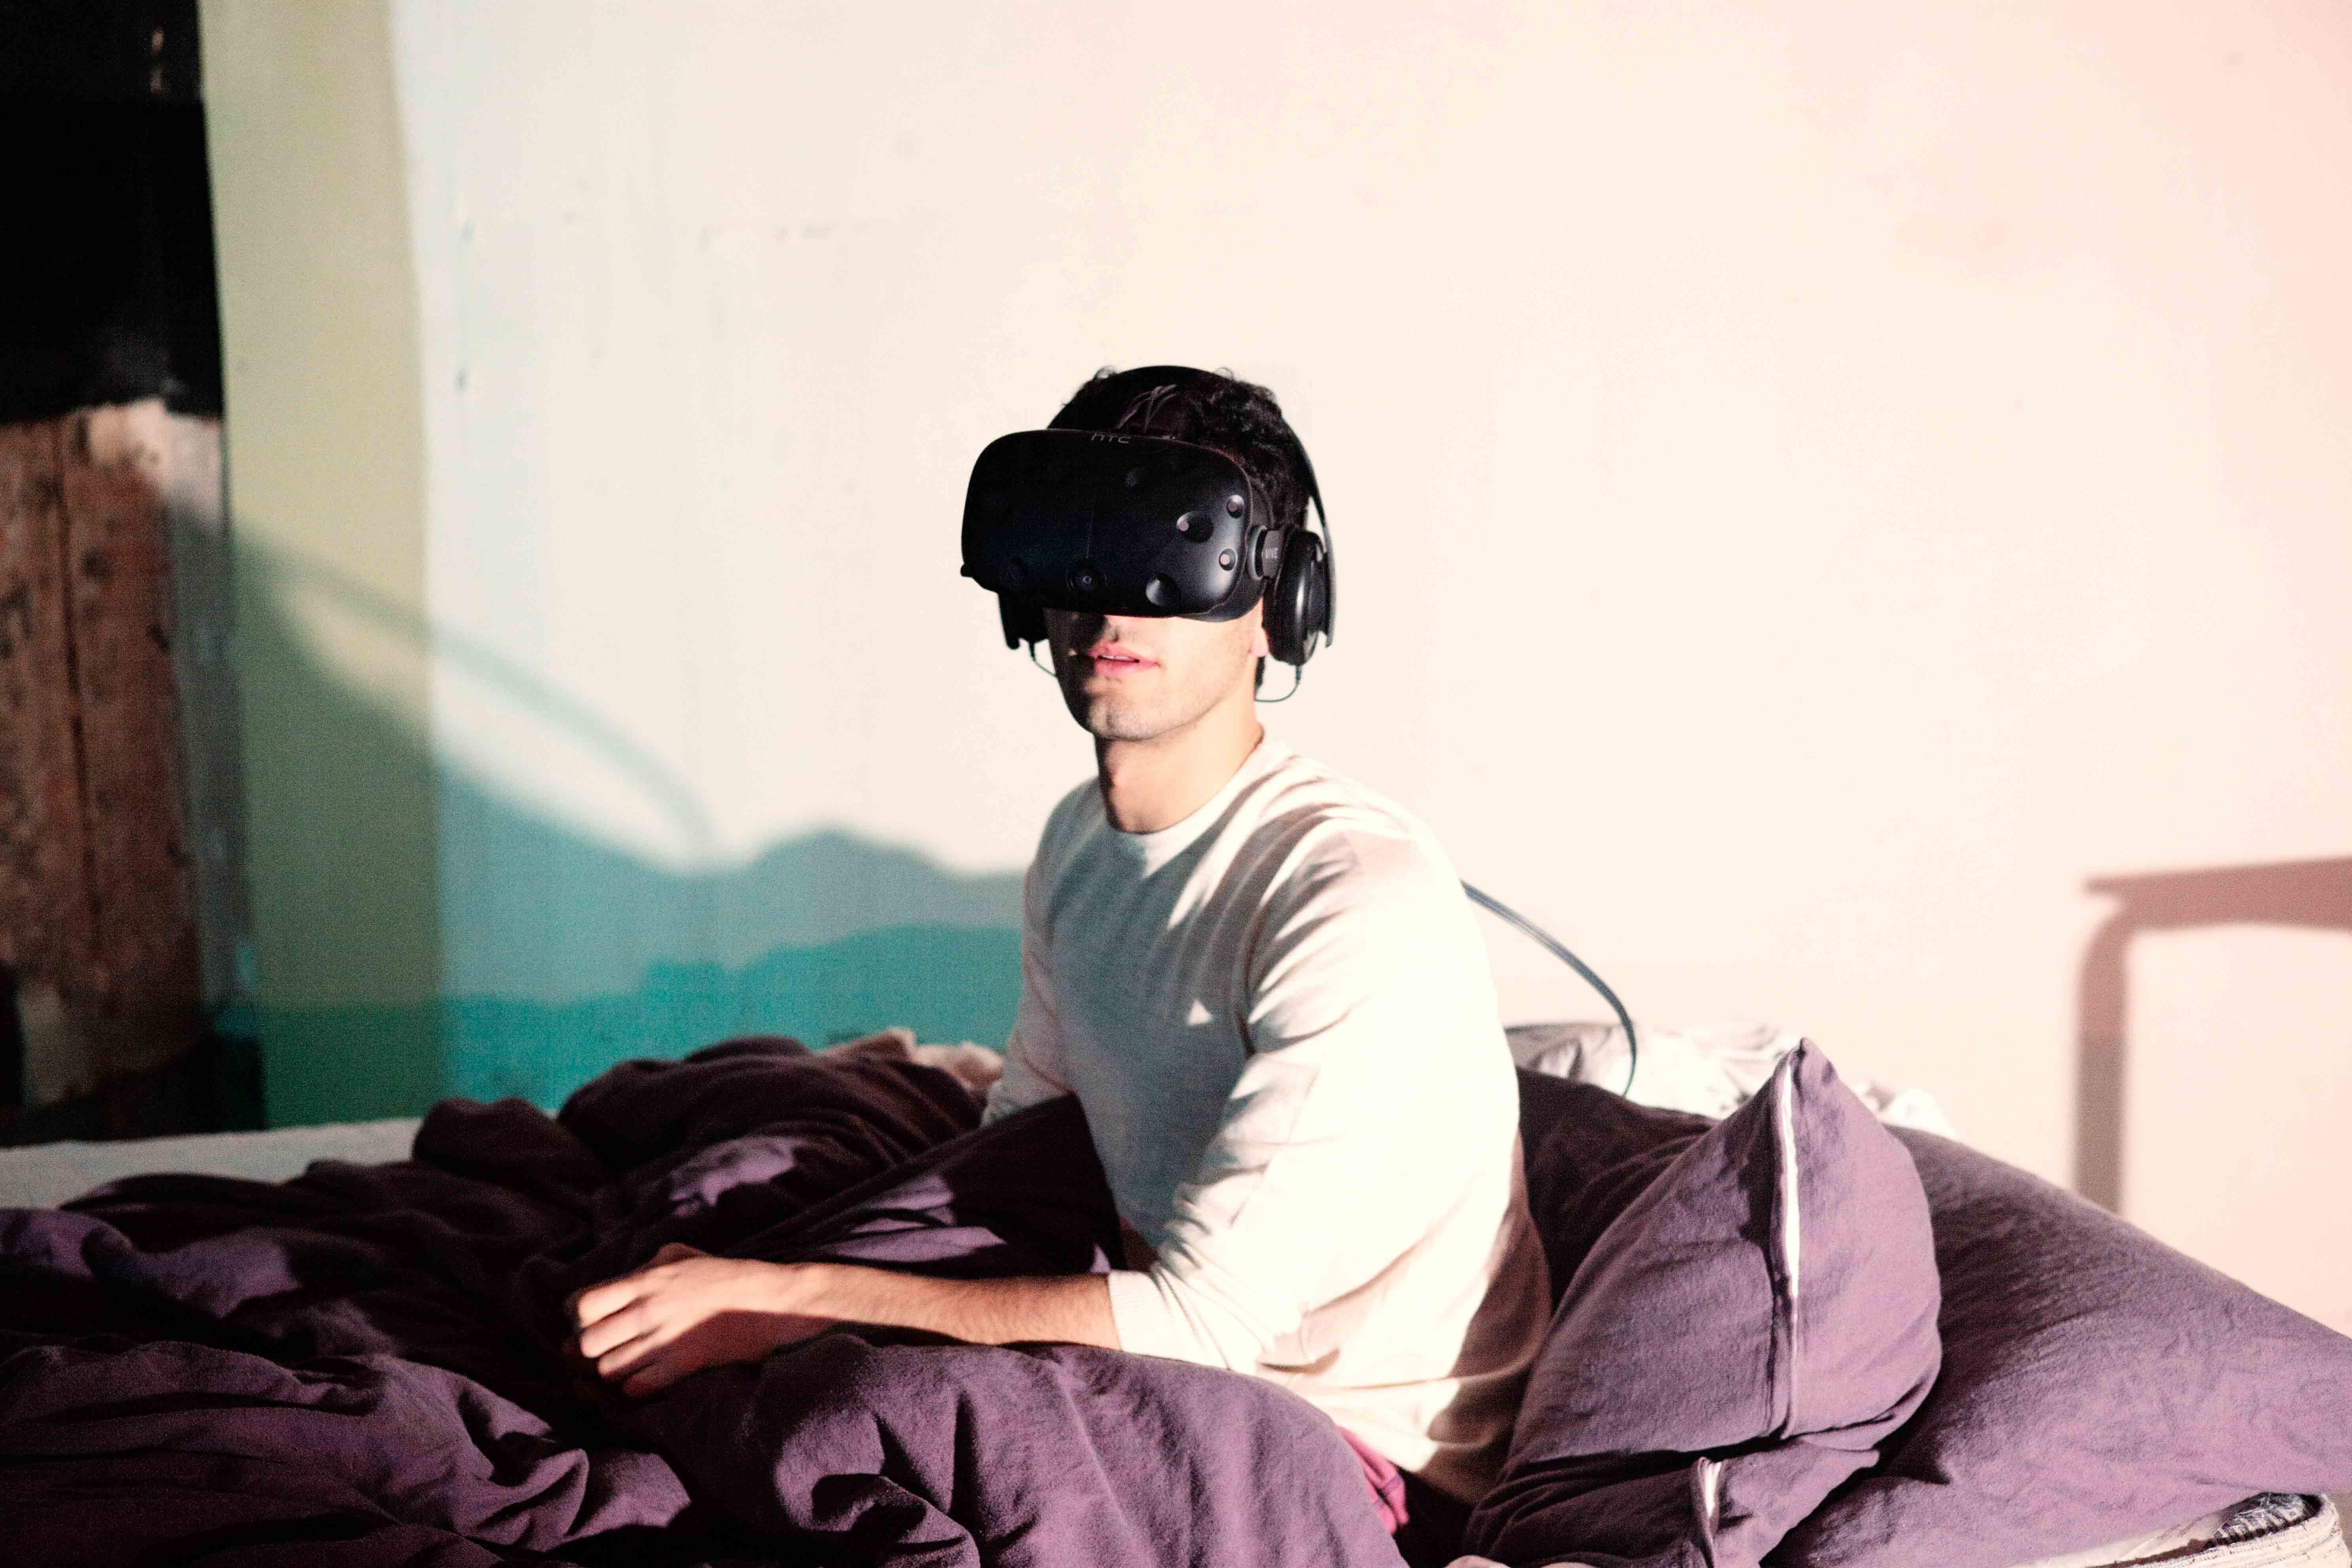 The artist wearing the VR headset, in bed.